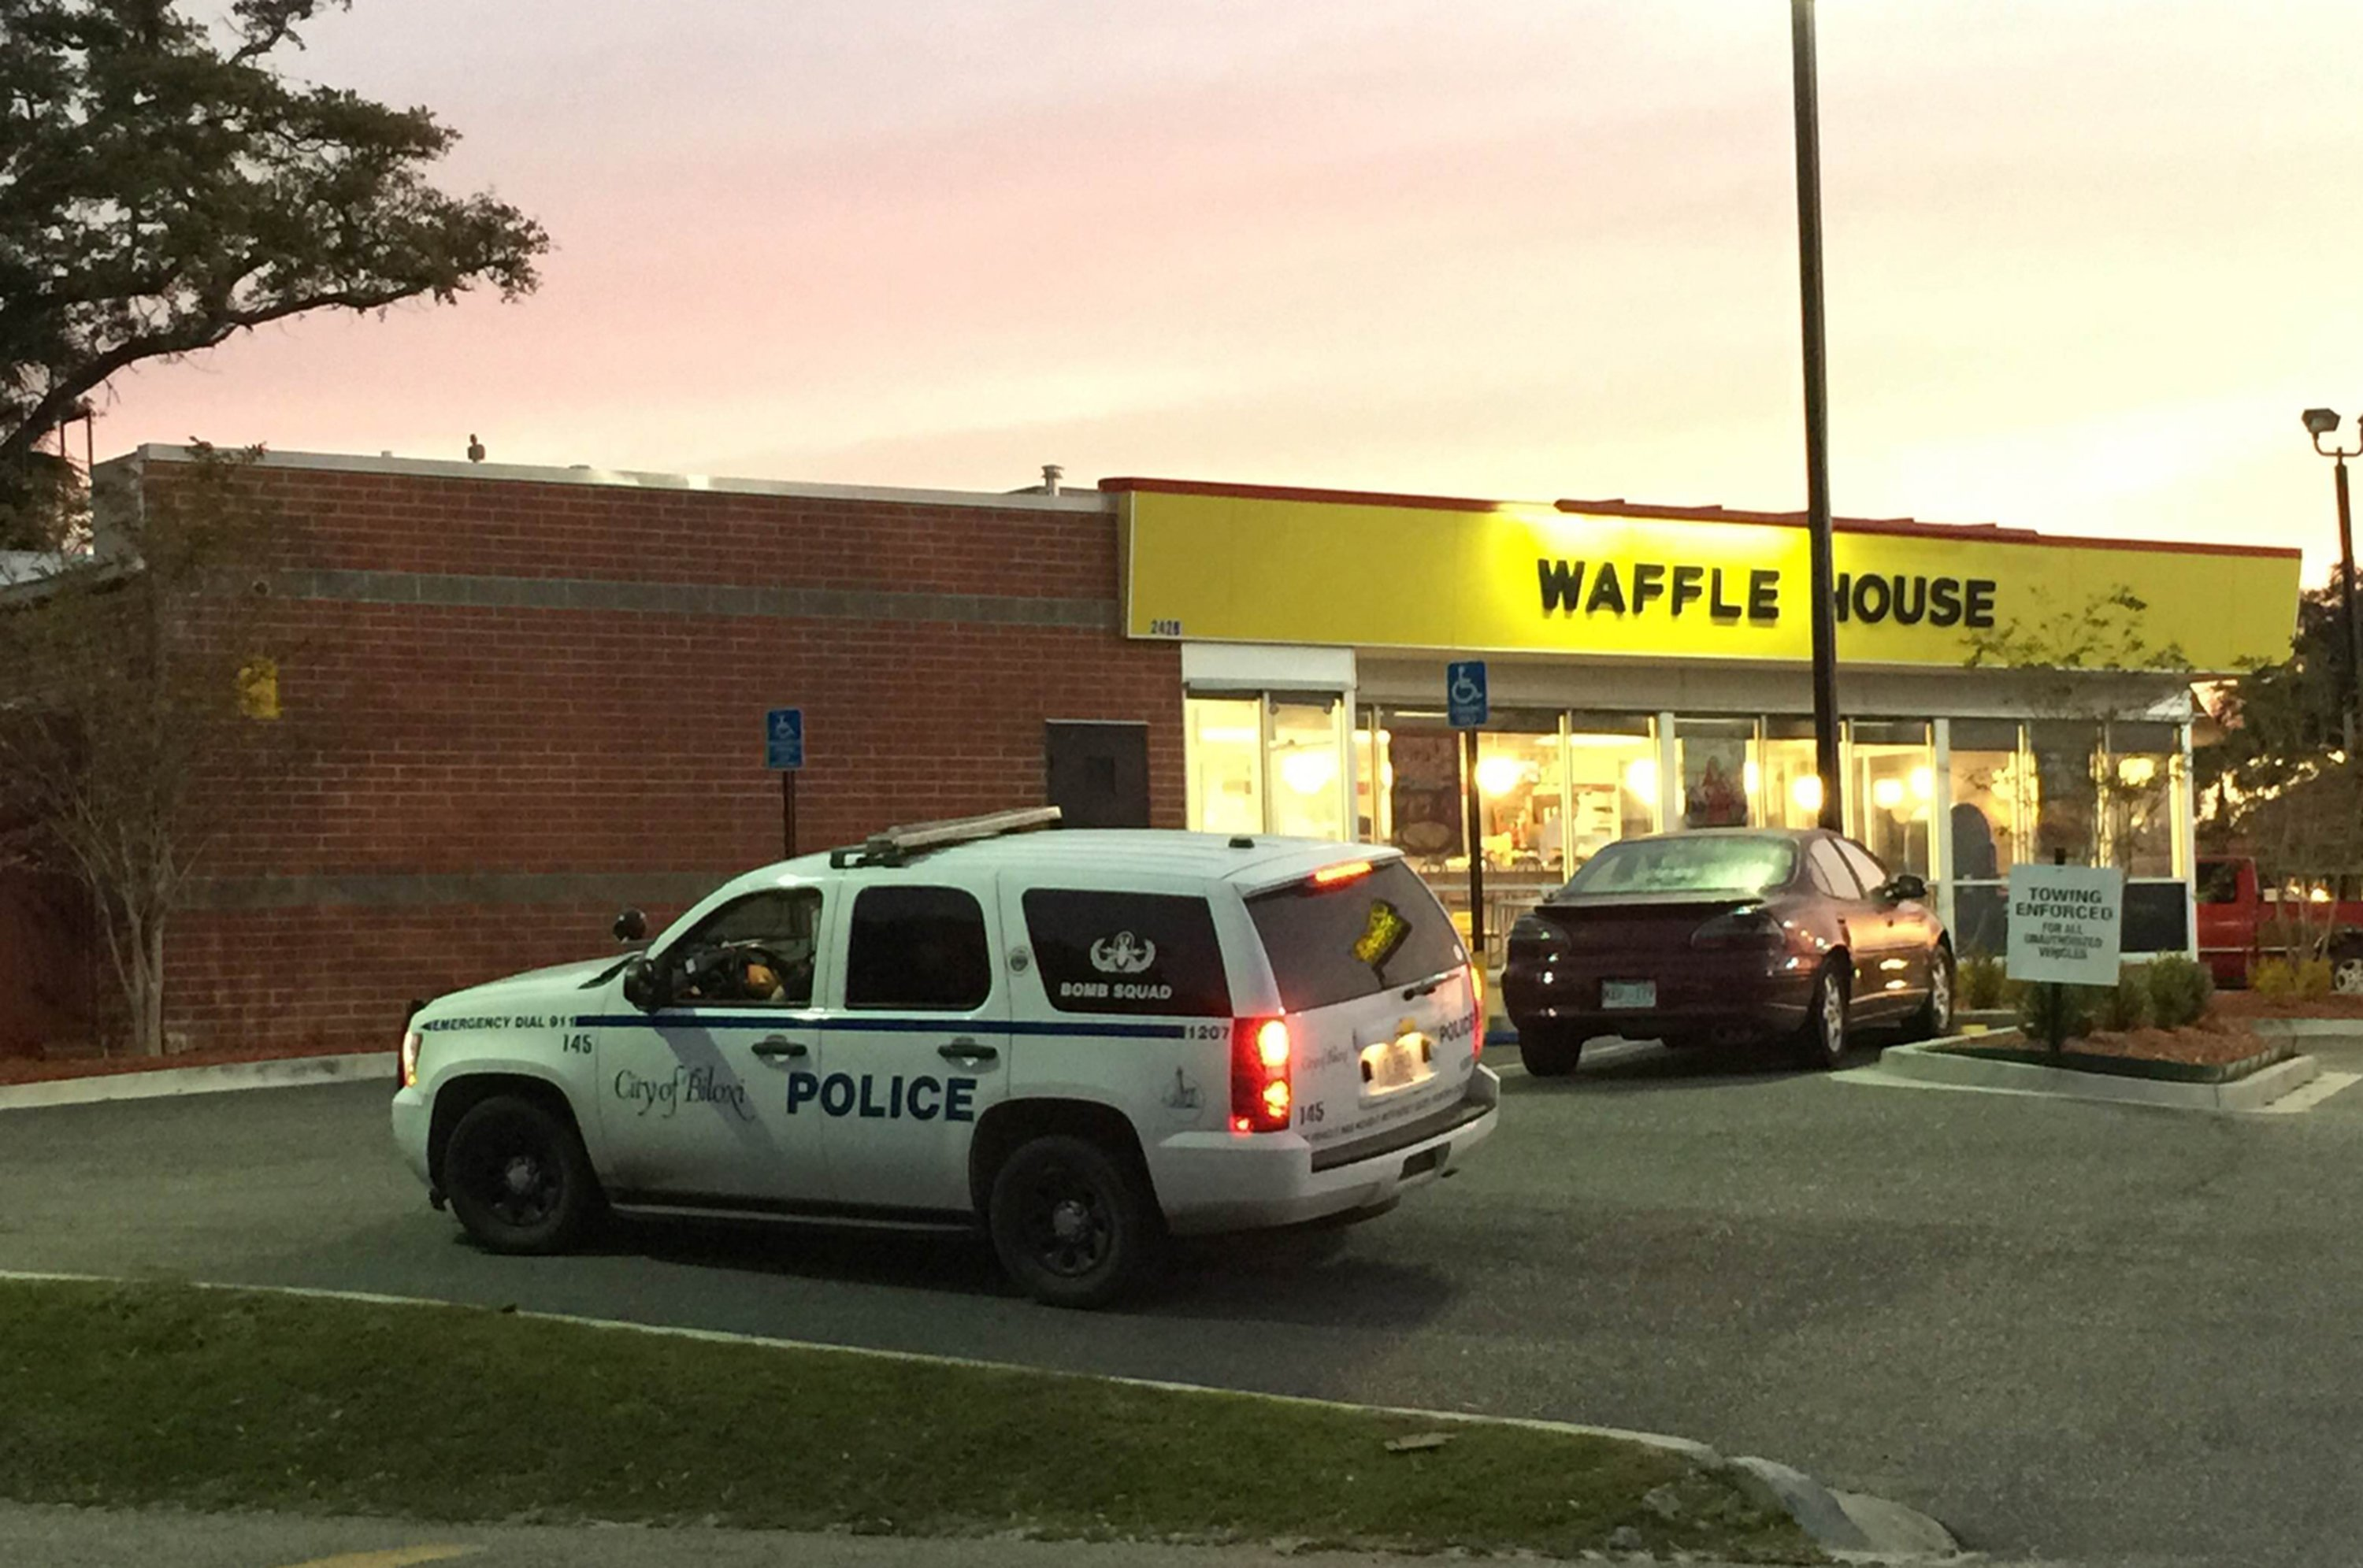 A police vehicle sits outside the Waffle House on U.S. 90 in Biloxi, Miss., after a fatal shooting on Nov. 27, 2015.